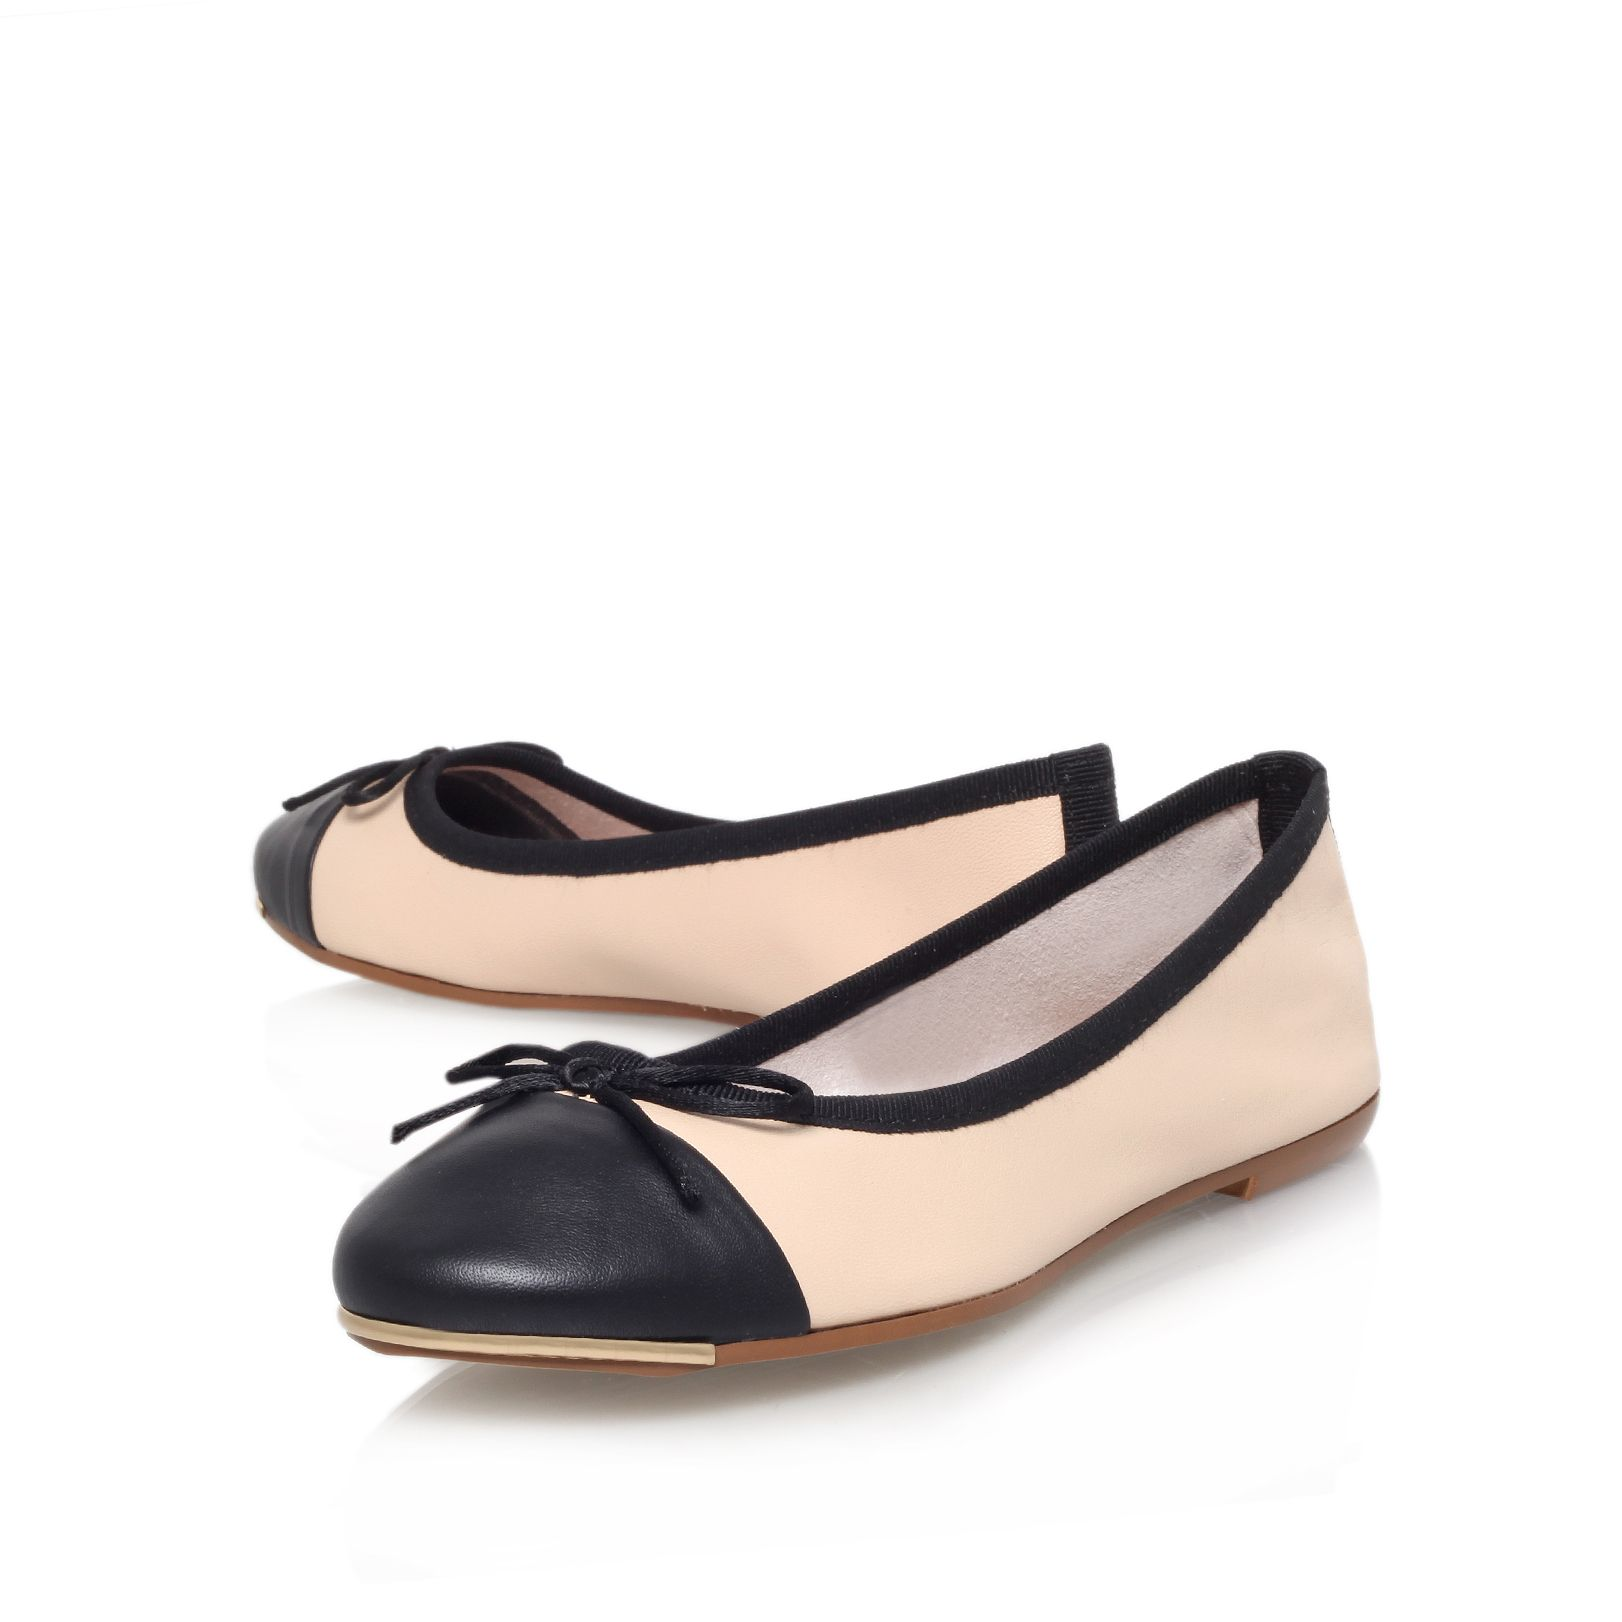 Law flat ballerina shoes